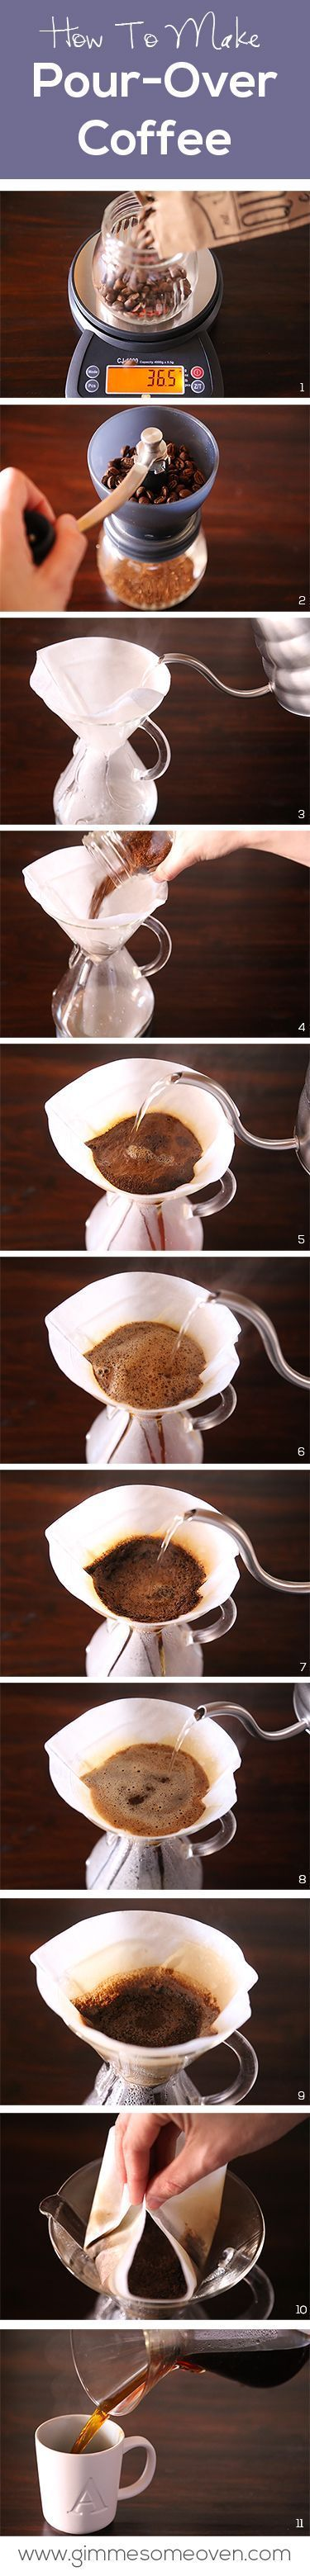 http://www.modelhomekitchens.com/category/Coffee-Grinder/ How To Make Pour-Over Coffee | gimmesomeoven.com